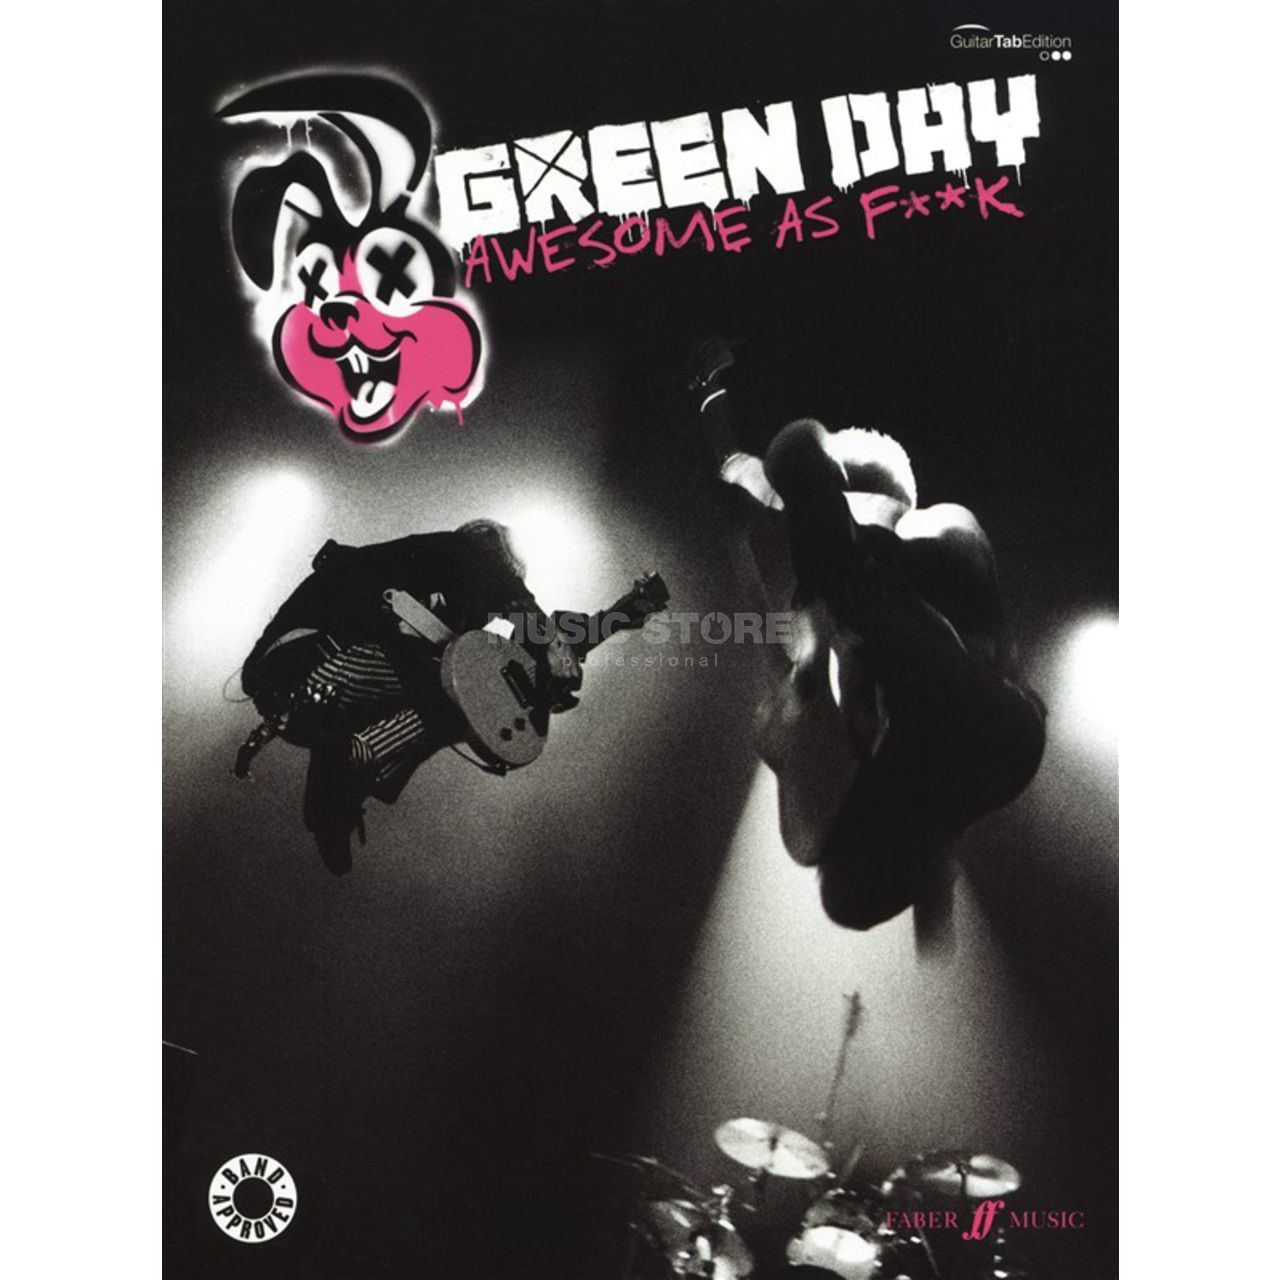 Green day awesome as fk dvd download